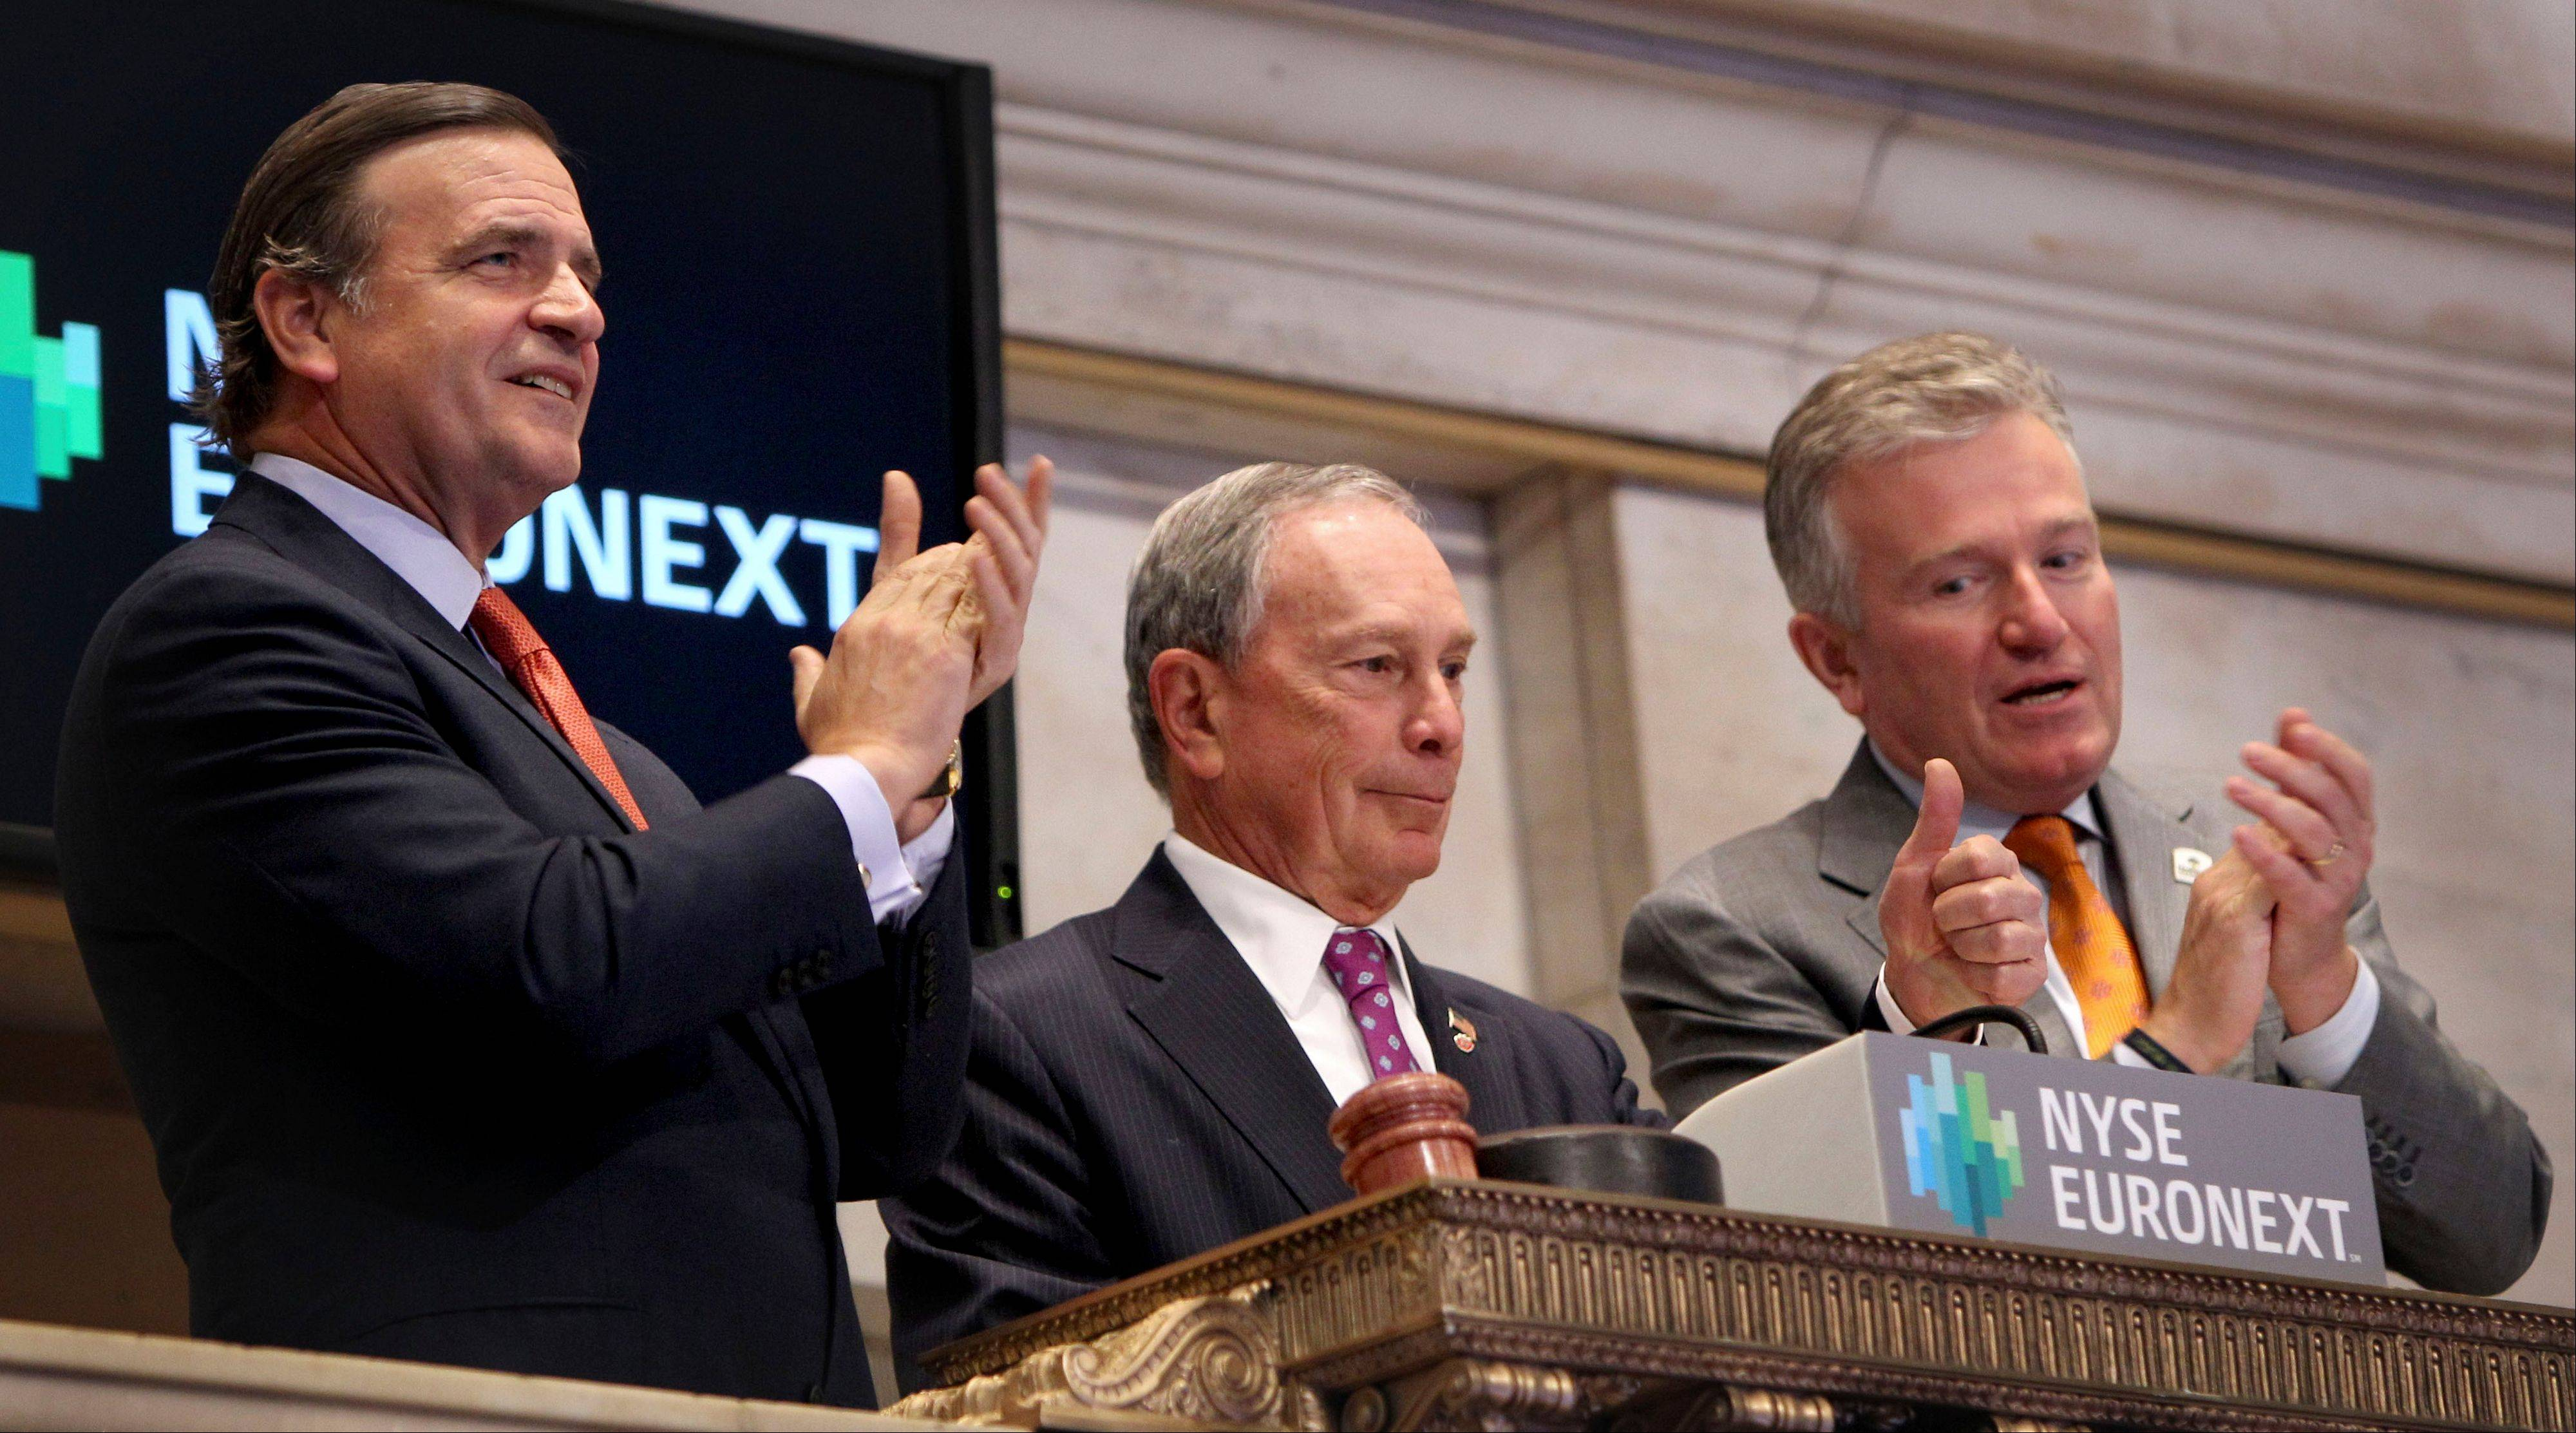 New York City Mayor Michael Bloomberg, center, gives a thumbs up after ringing in the opening bell at the New York Stock Exchange Wednesday.